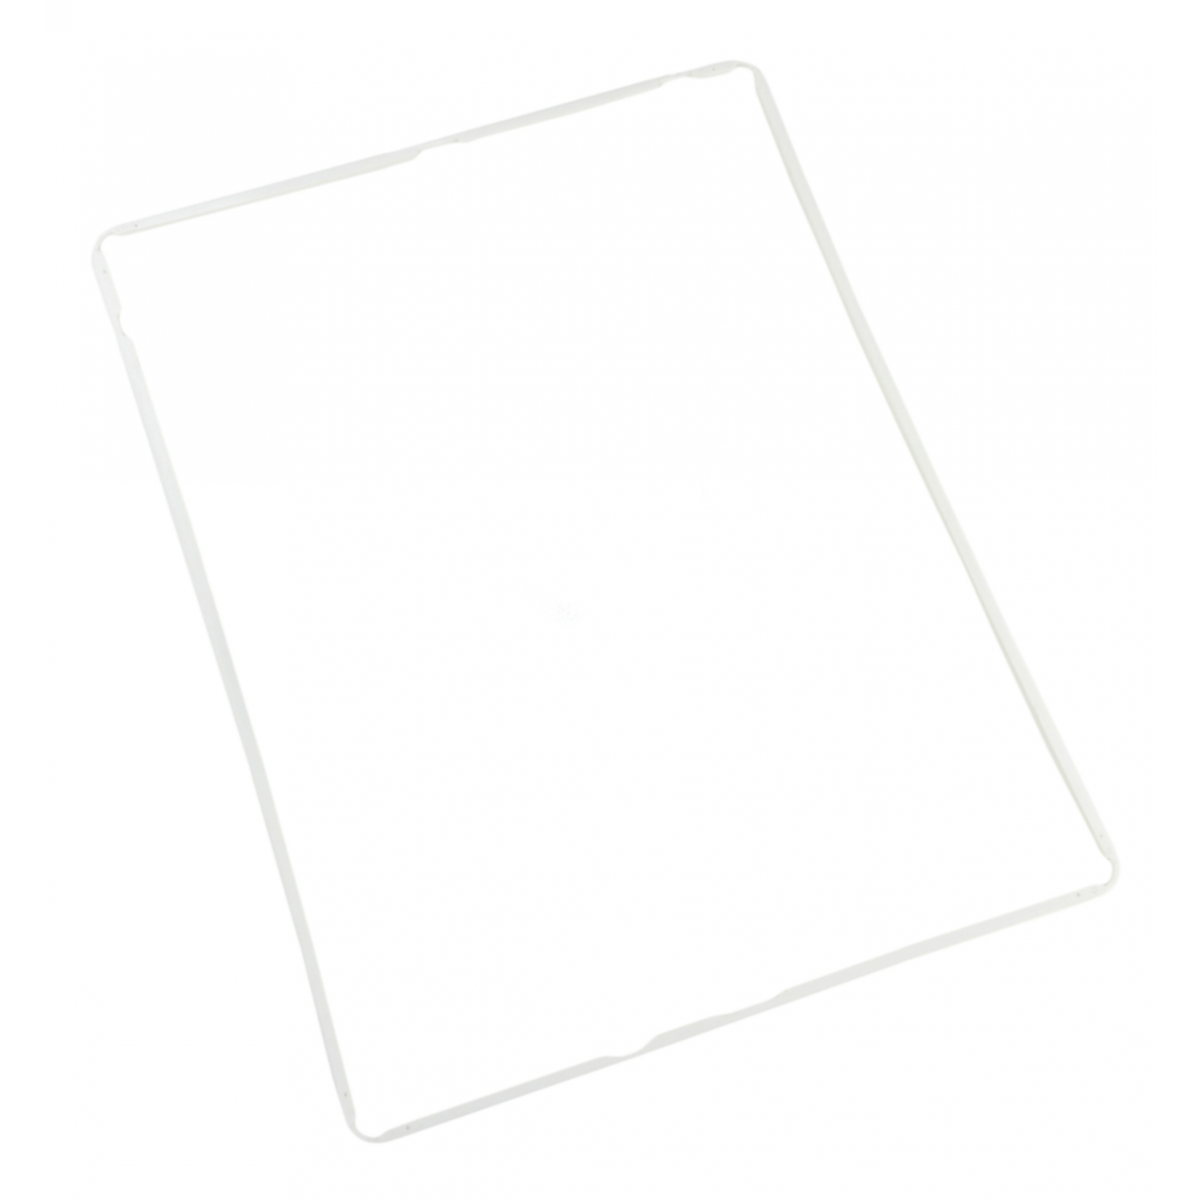 transparent ipad frame white - photo #6